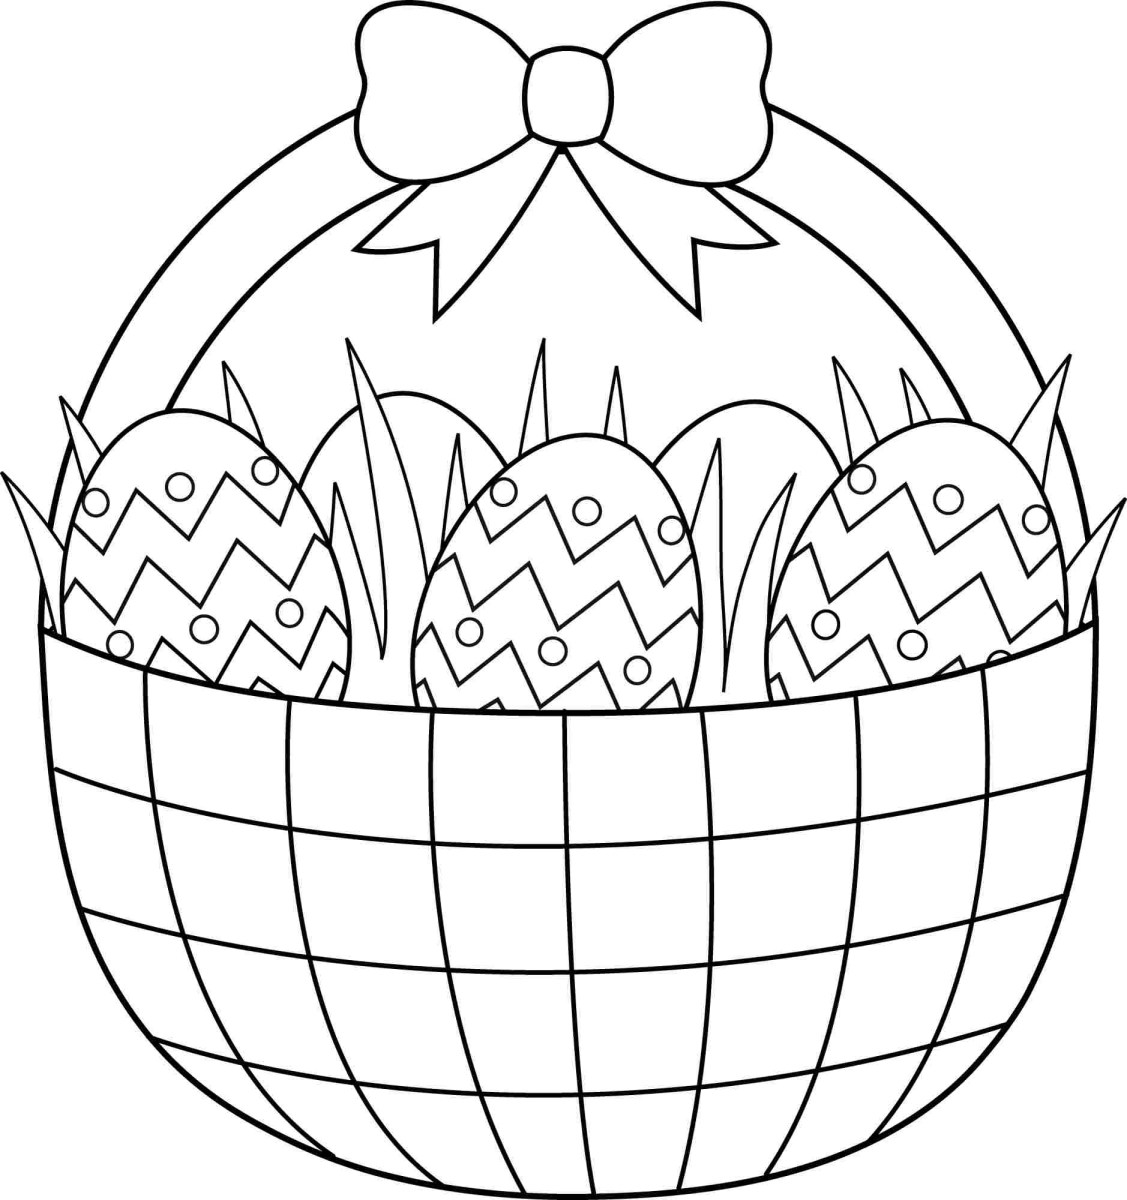 Printable Easter Coloring Pages Free Easter Coloring Pages Printable Easter Coloring Sheets Free